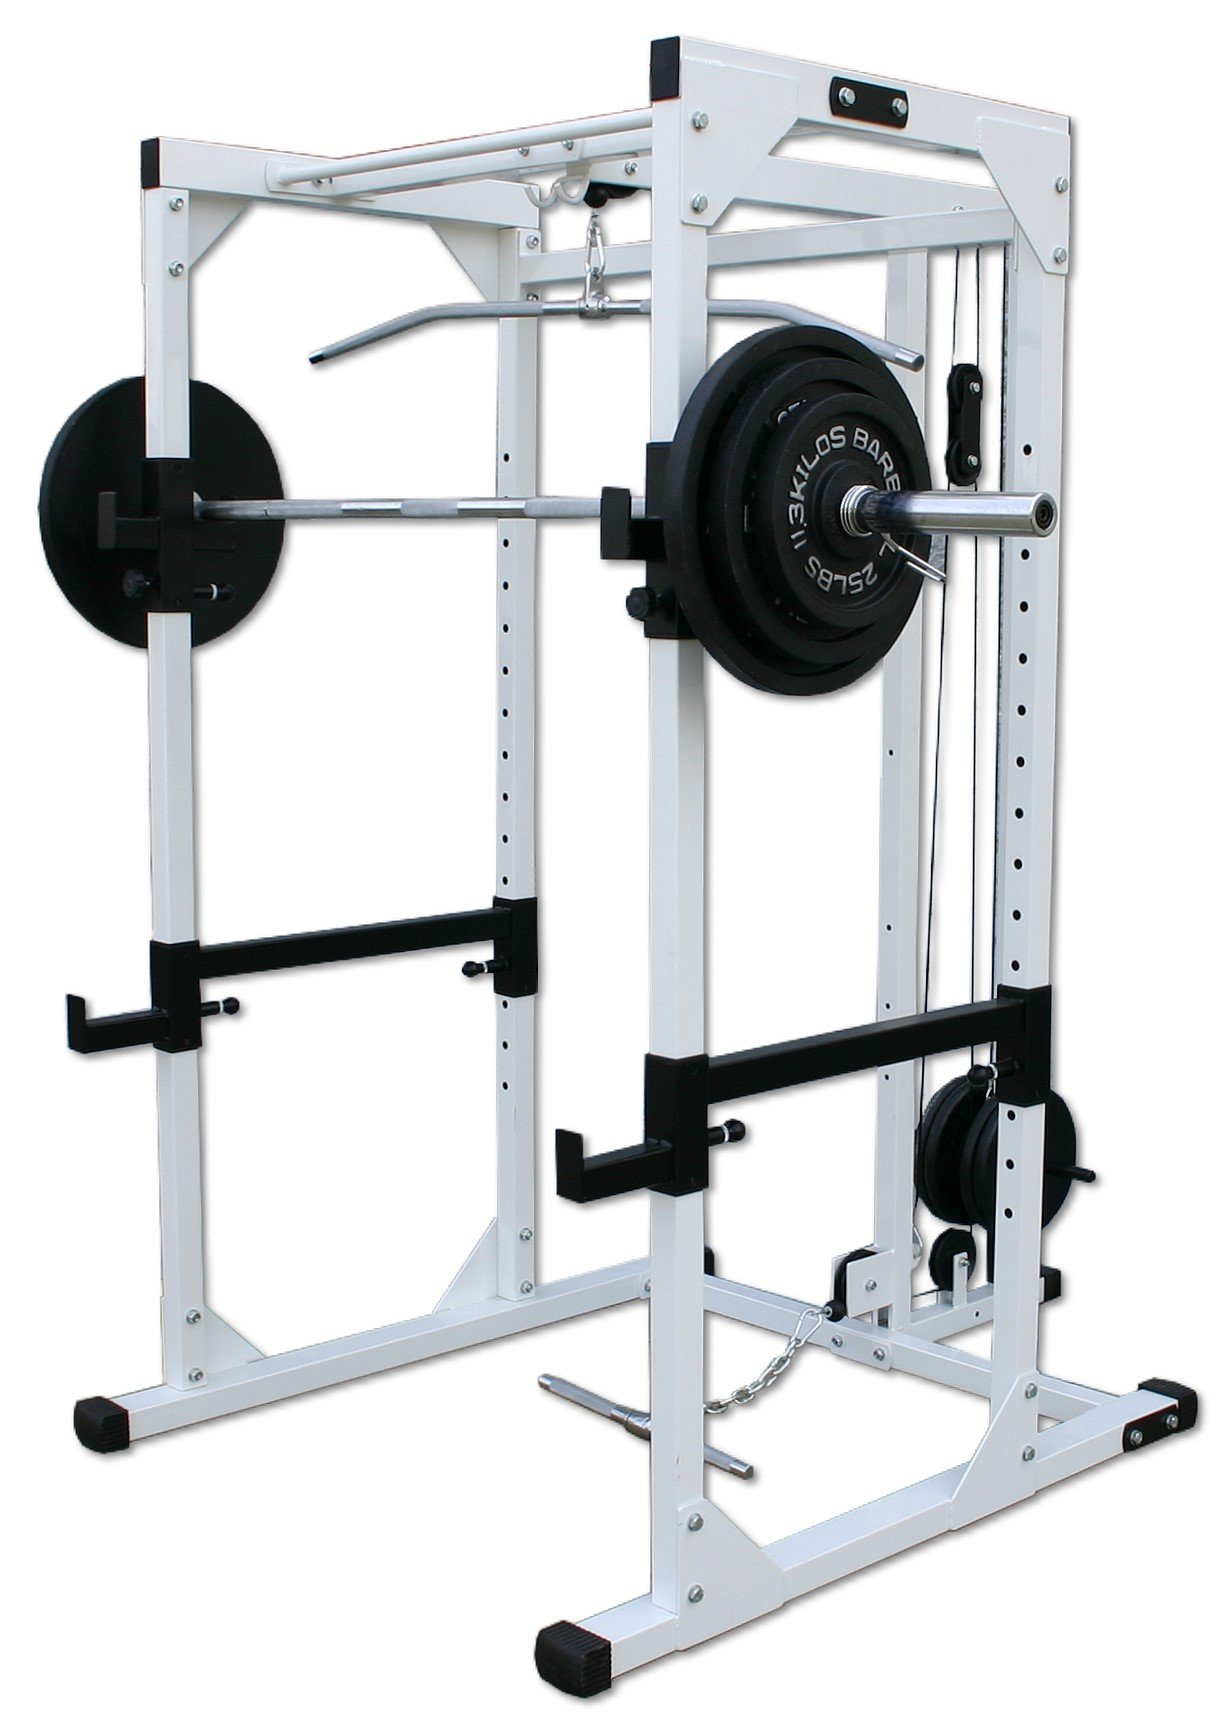 Deltech Fitness Power Rack with Lat Attachment by Deltech Fitness